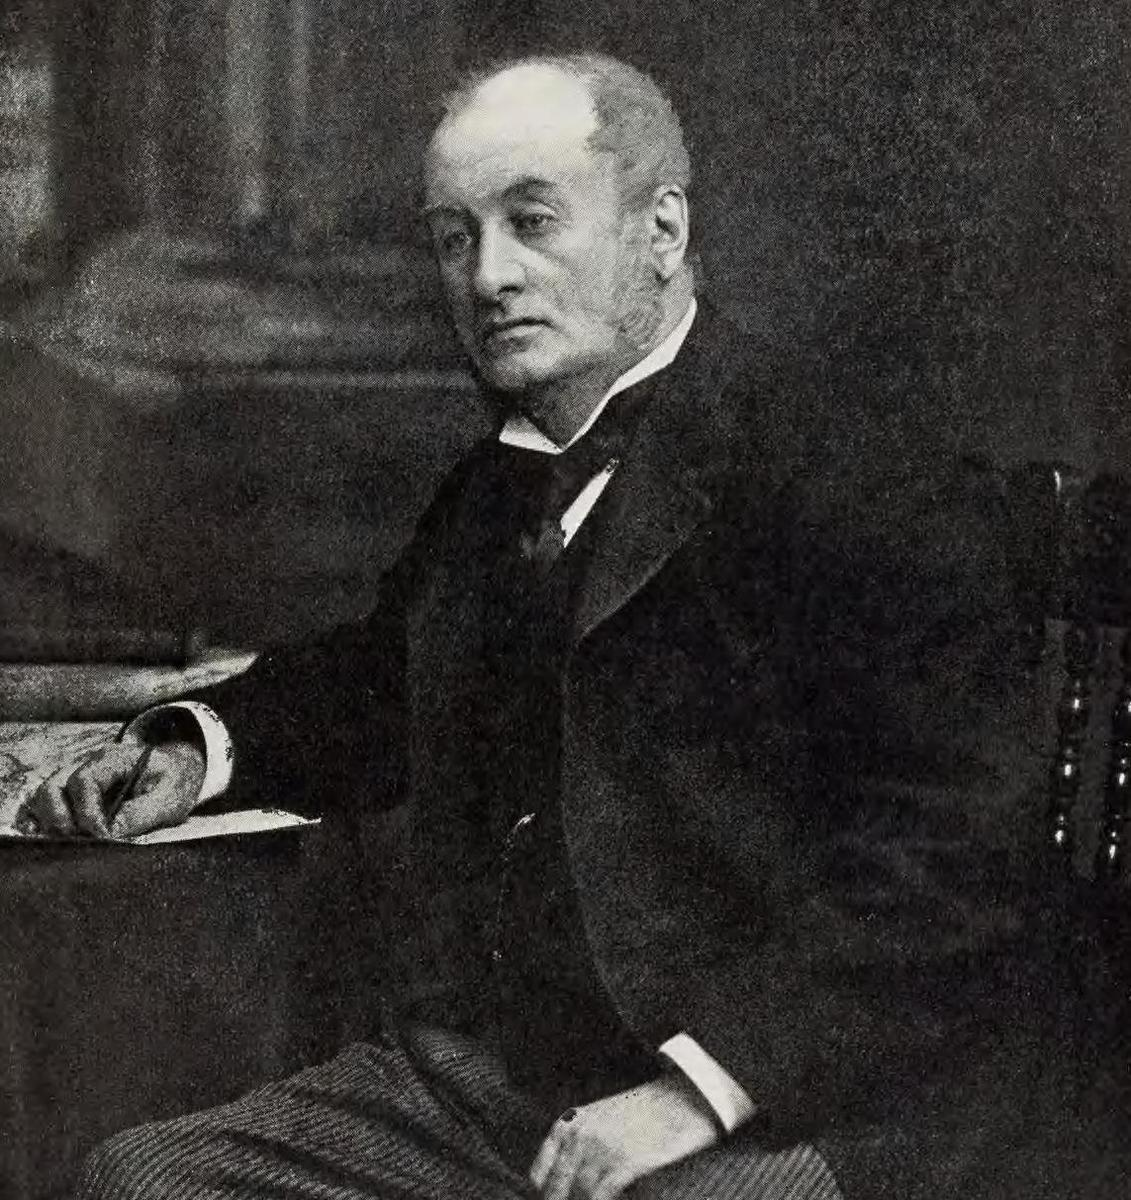 Sir Clements Markham (1905)